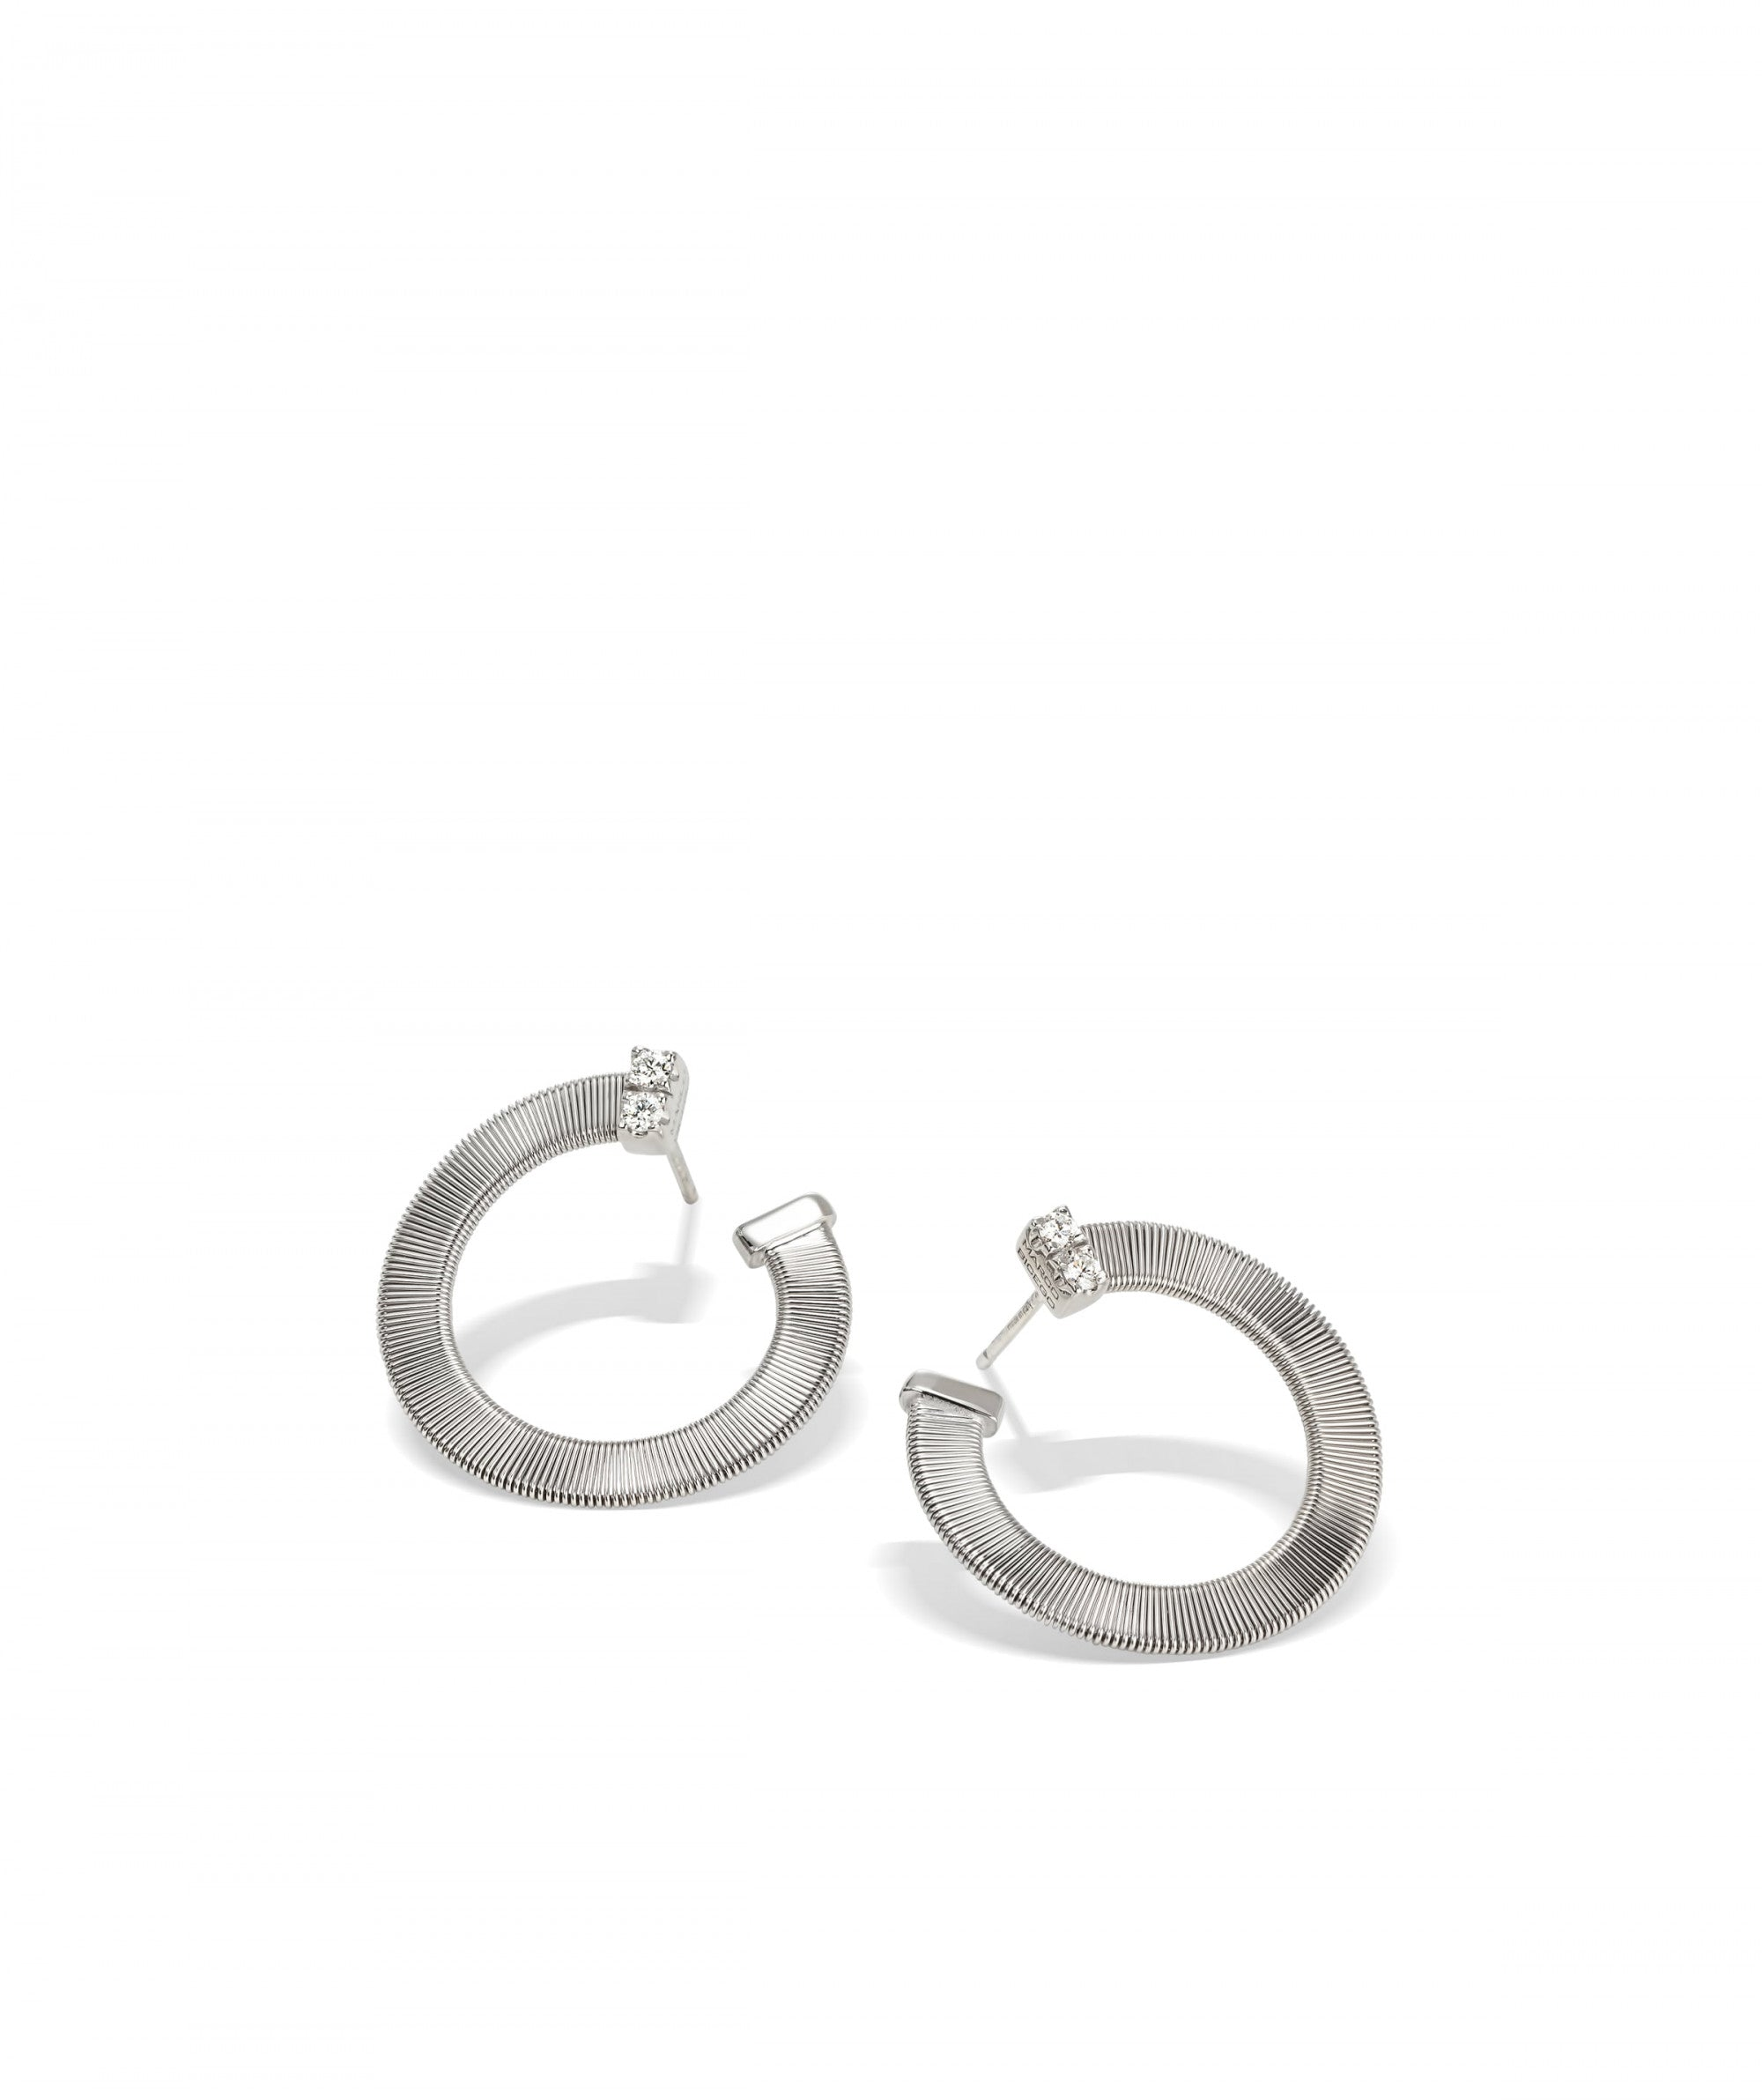 Masai Earrings in 18k White Gold with Pave Diamonds - Orsini Jewellers NZ